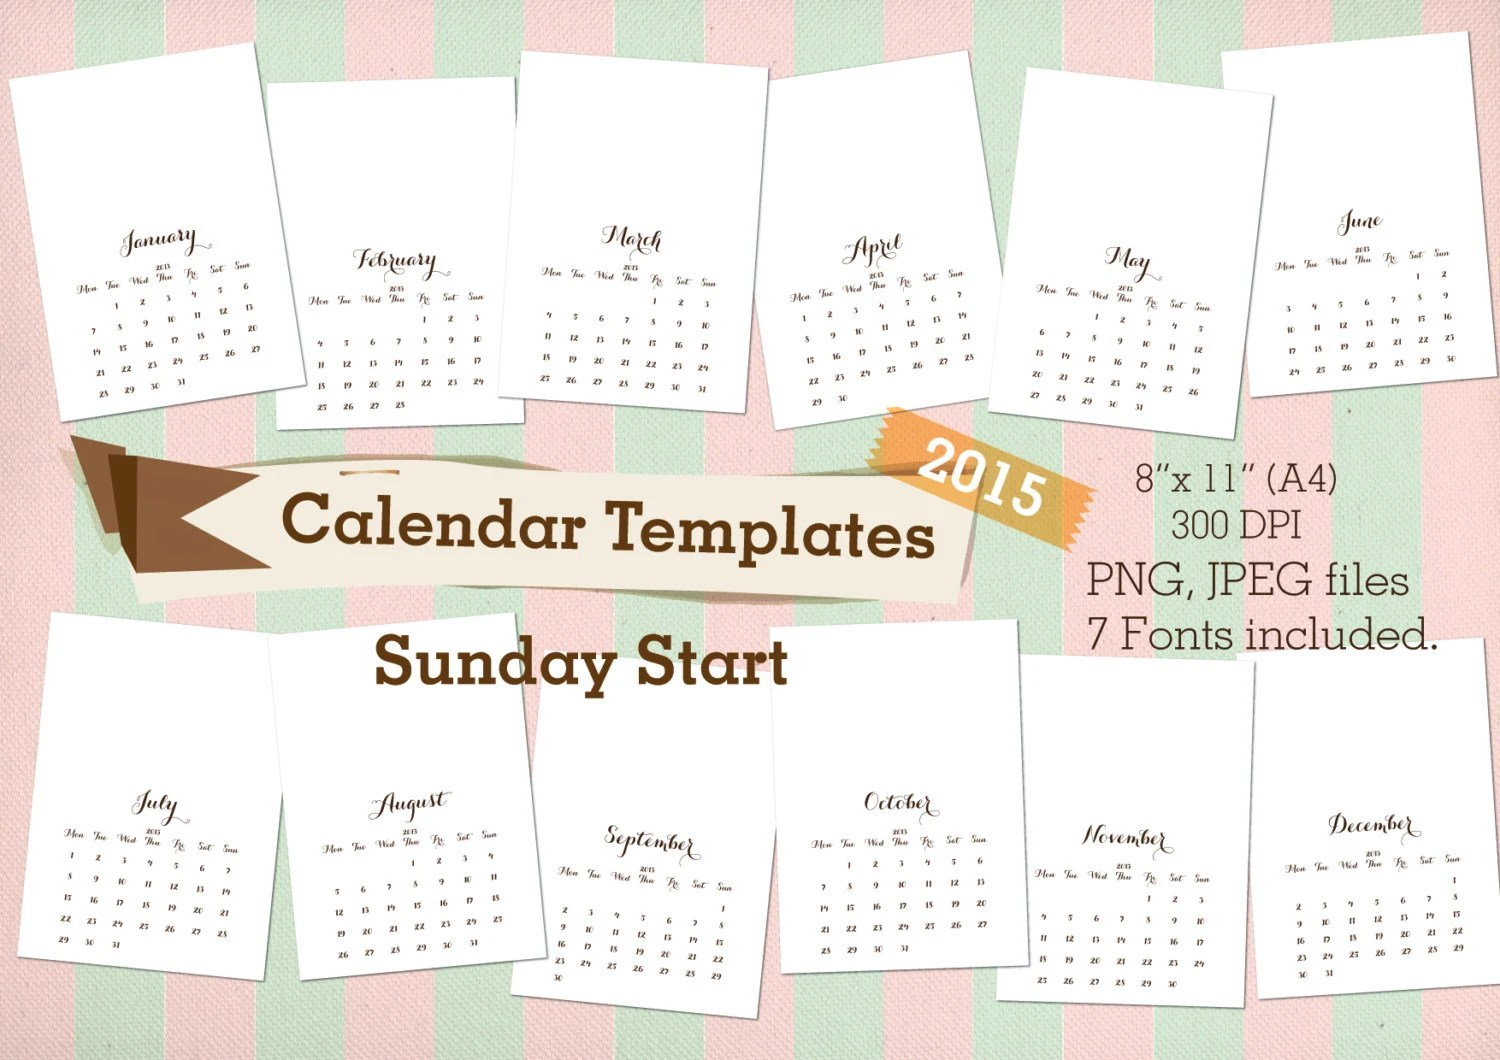 Quilt Full Size Printable Templates